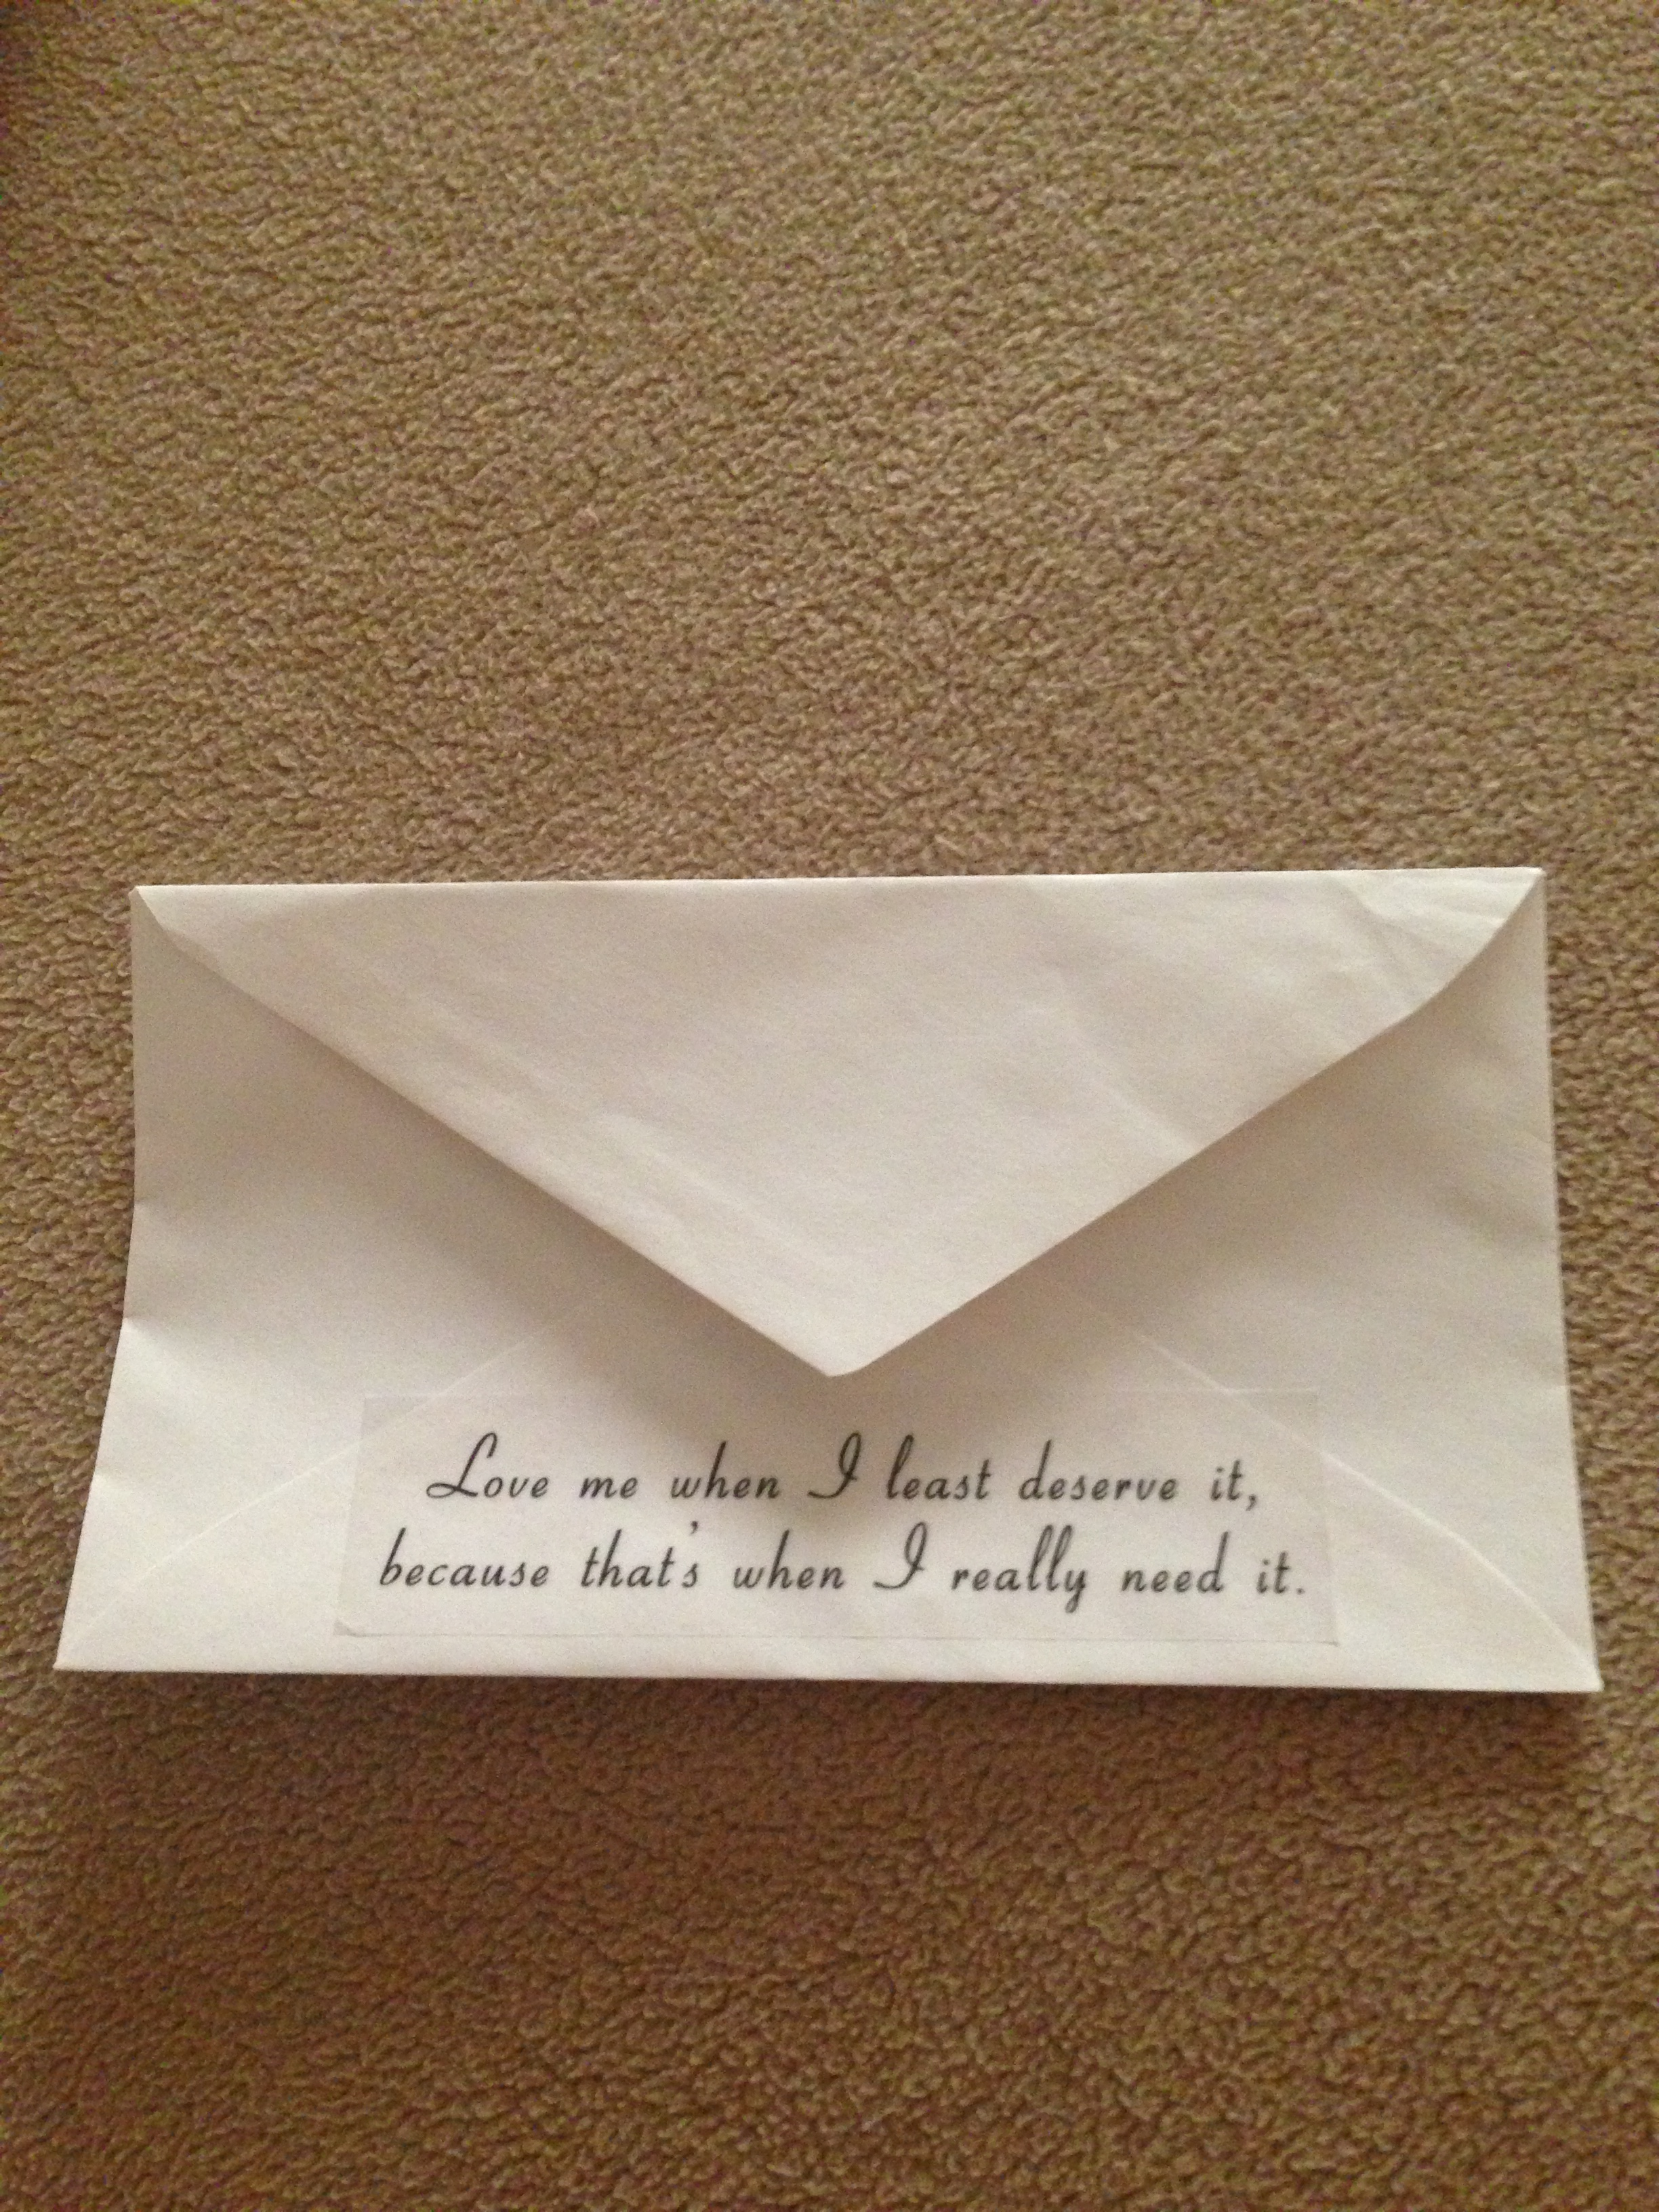 The back of the envelope.